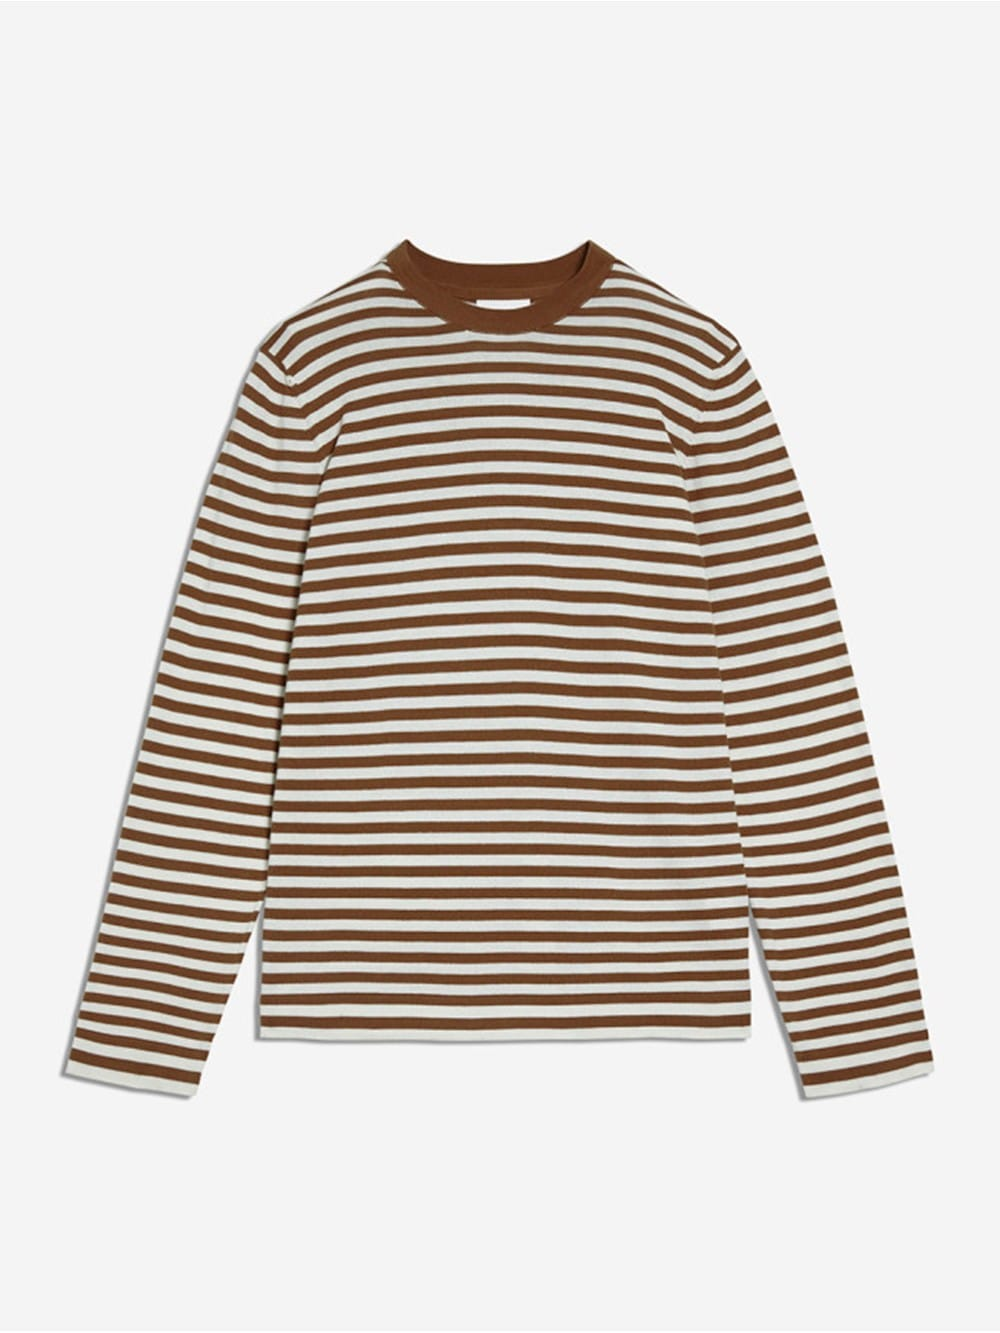 Stripped knit made of organic cotton-Laado Stripes